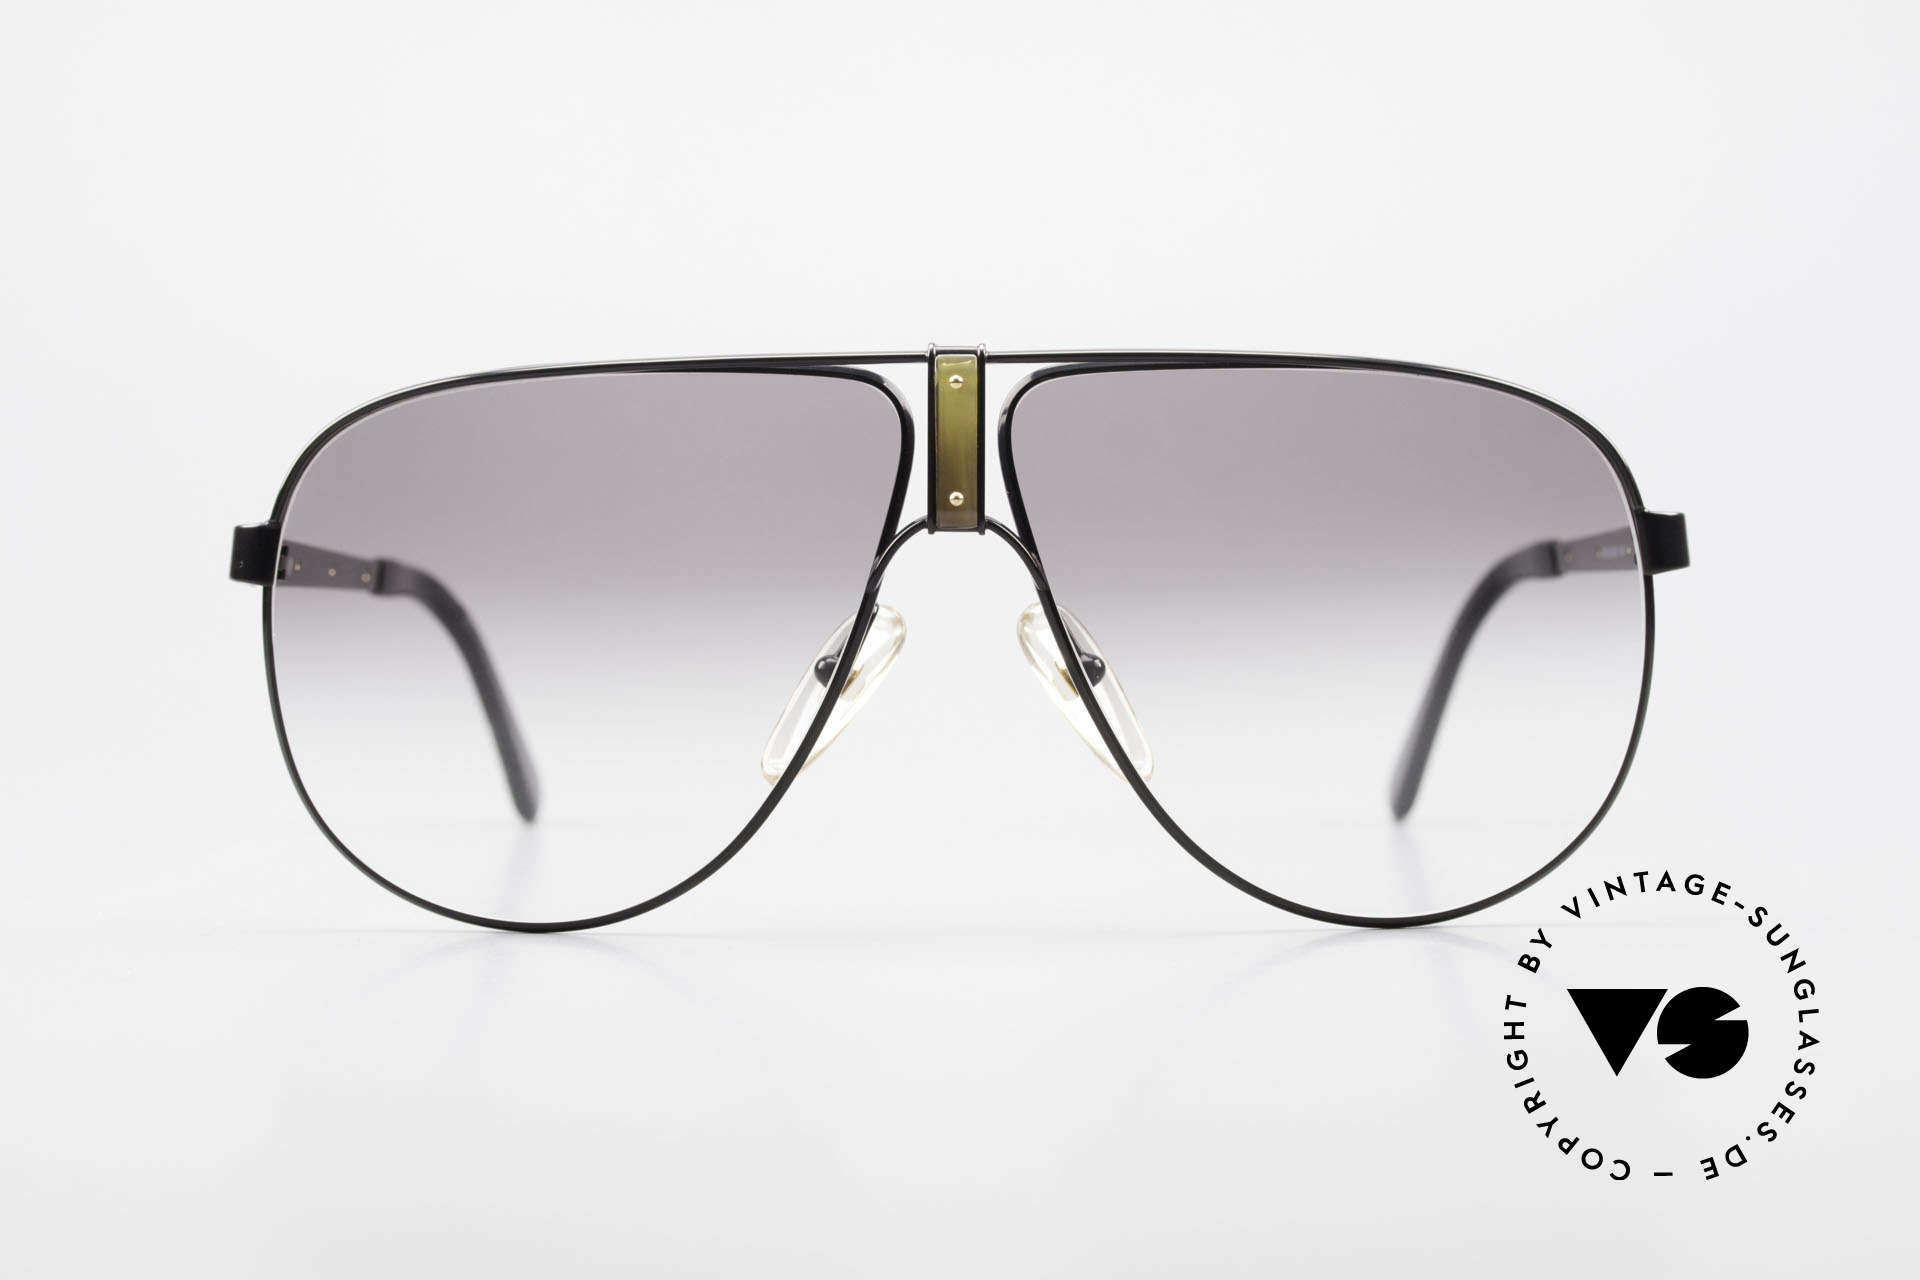 Dunhill 6043 Men's Shades With Horn Trims, high-end quality frame with precious appliqué, Made for Men